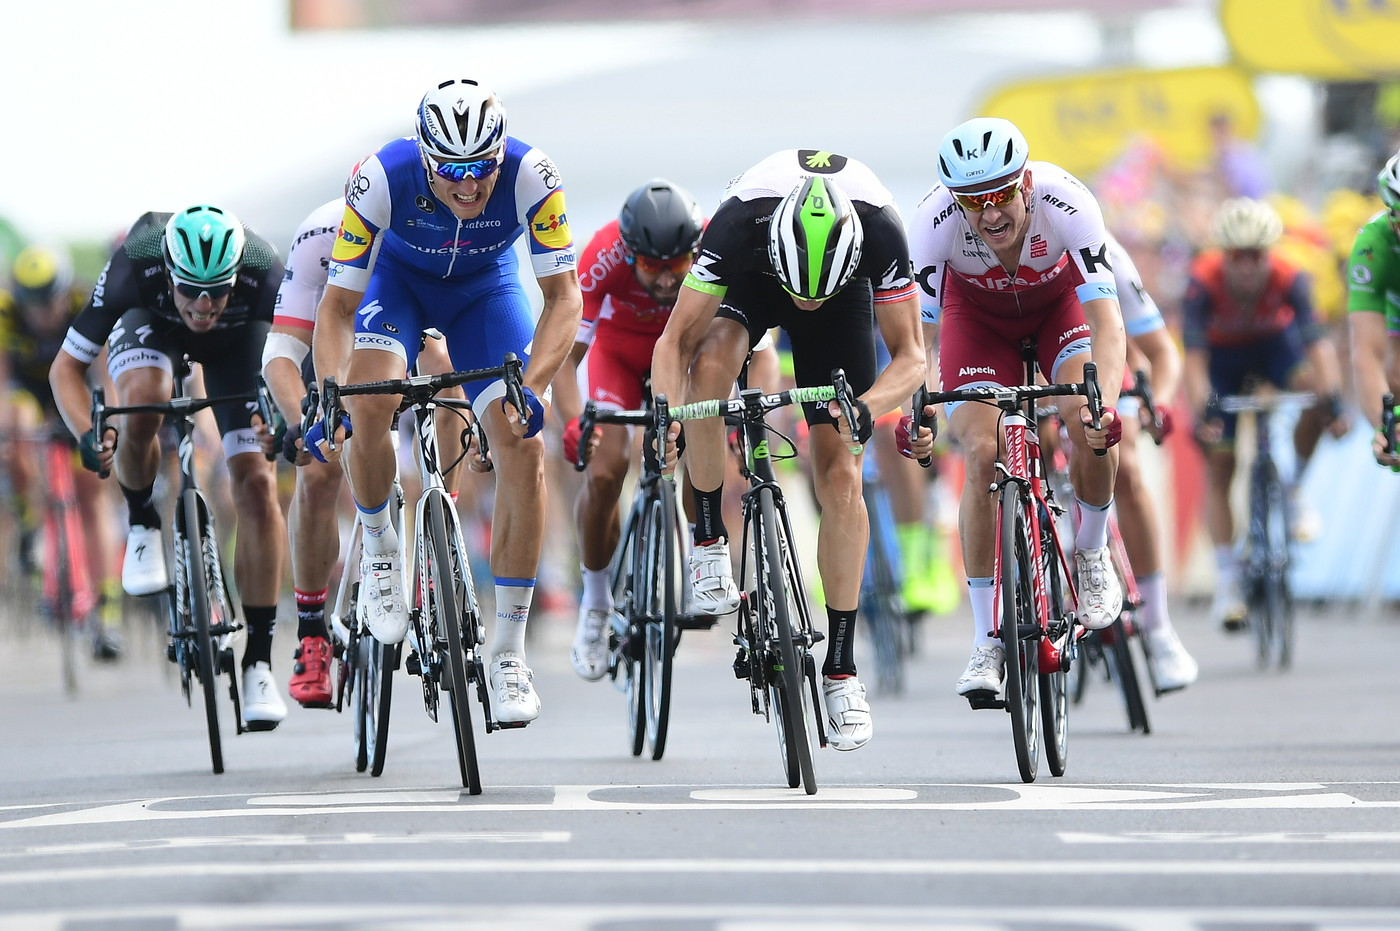 Tour de France stage ends in impossibly close photo finish